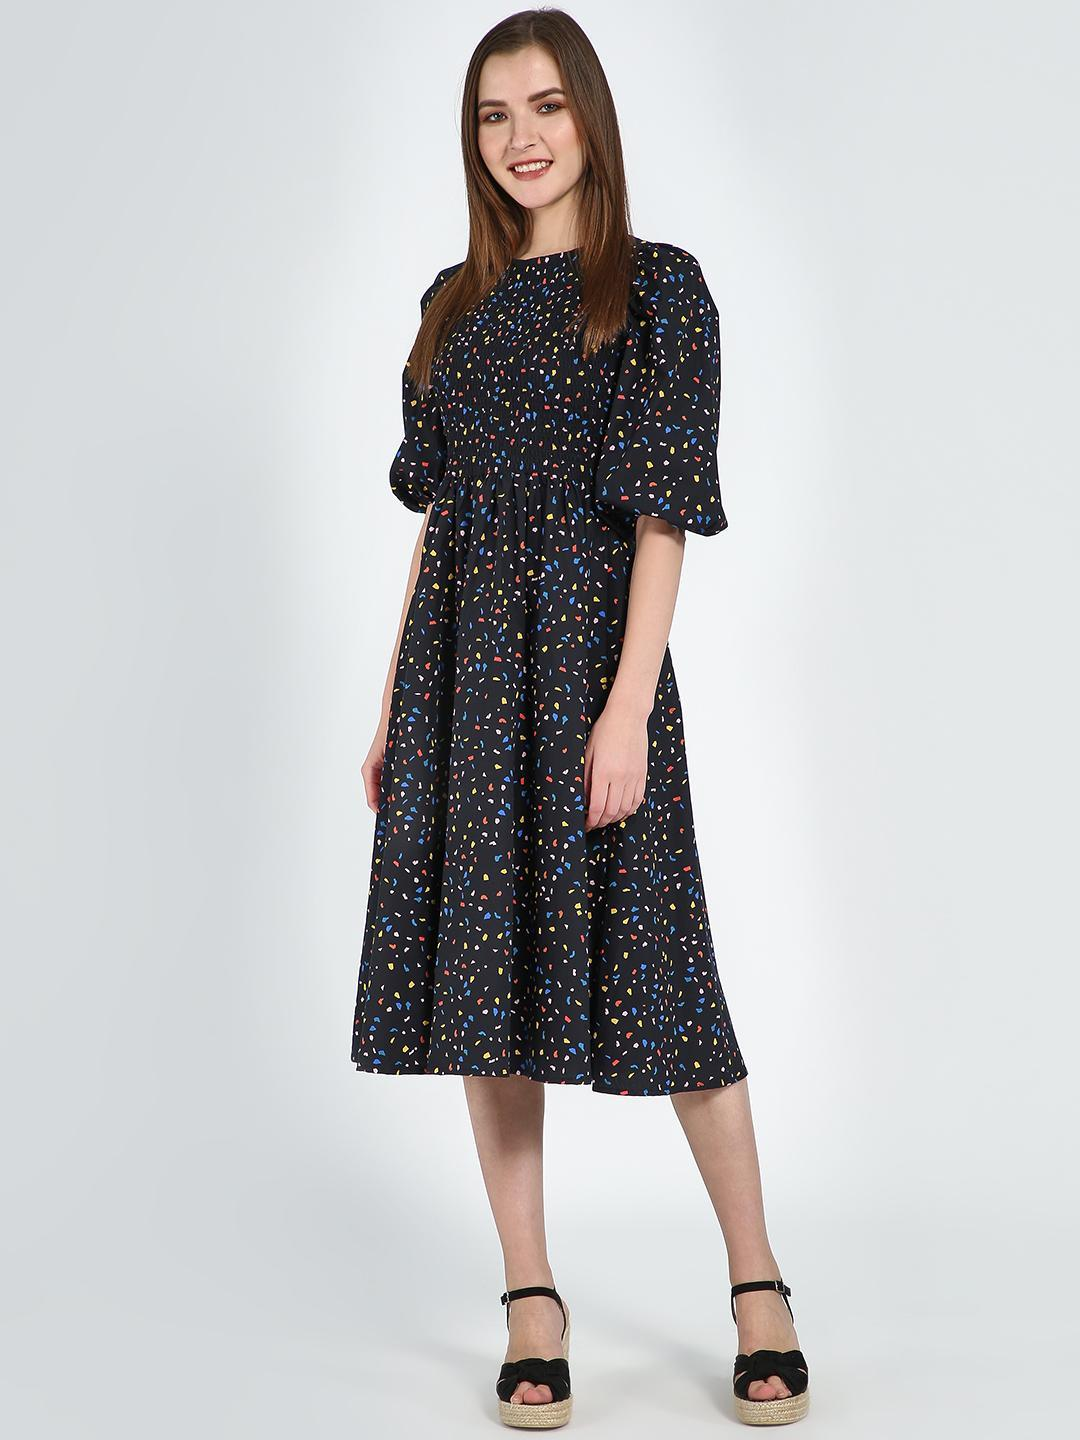 Femella Black Confetti Printed Cotton Smocked Dress 1